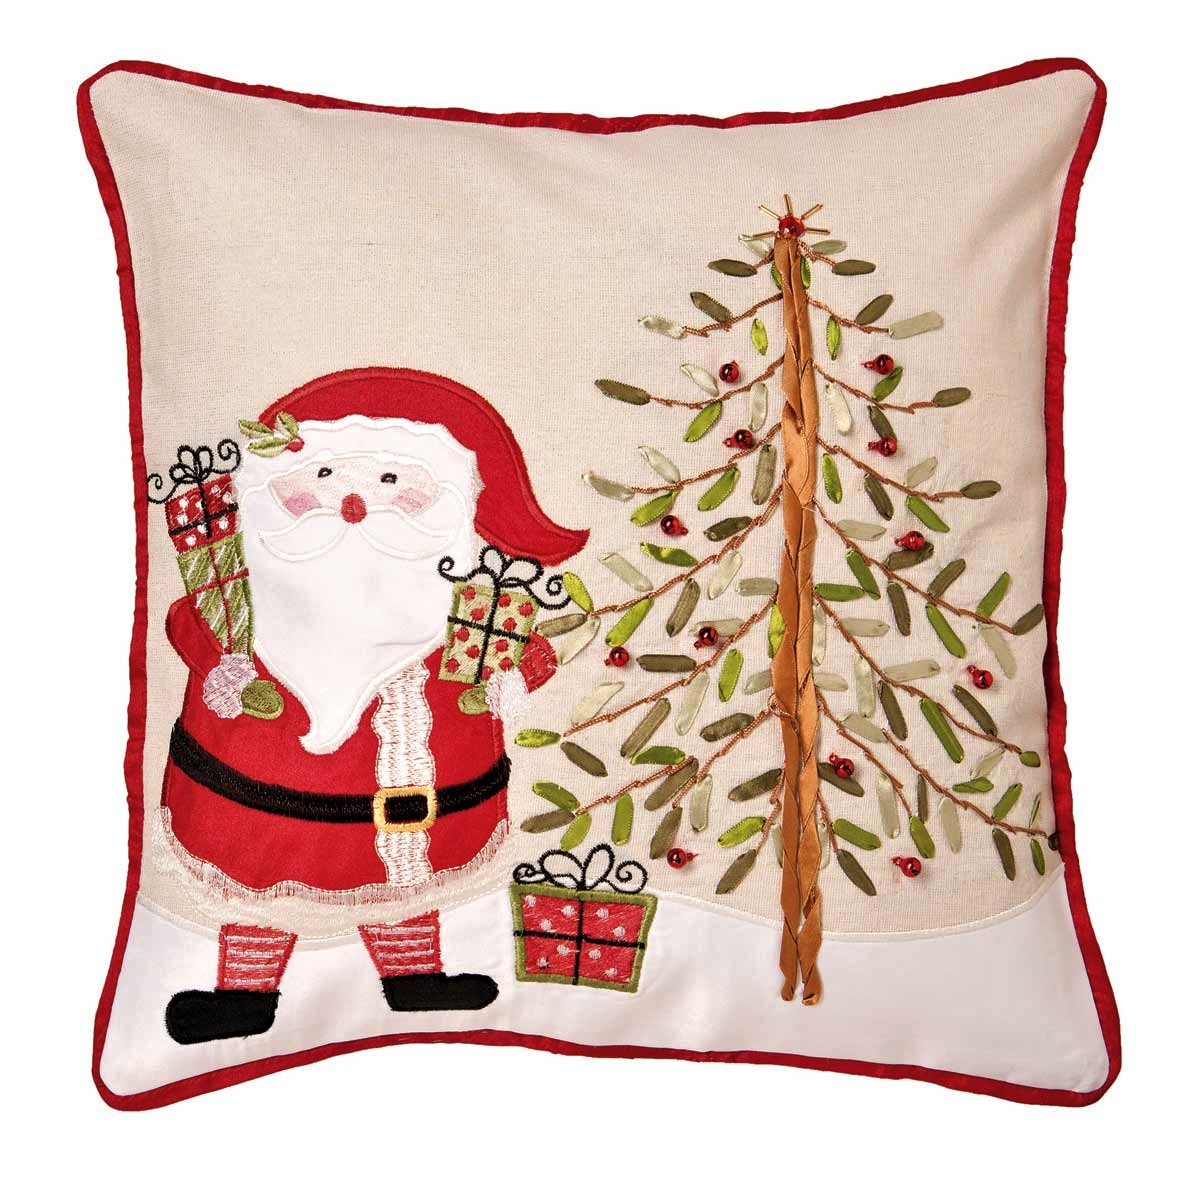 Santa And Tree Cushion Cover Embroidered Applique Ribbon Work 43x43cm 16x16 Square